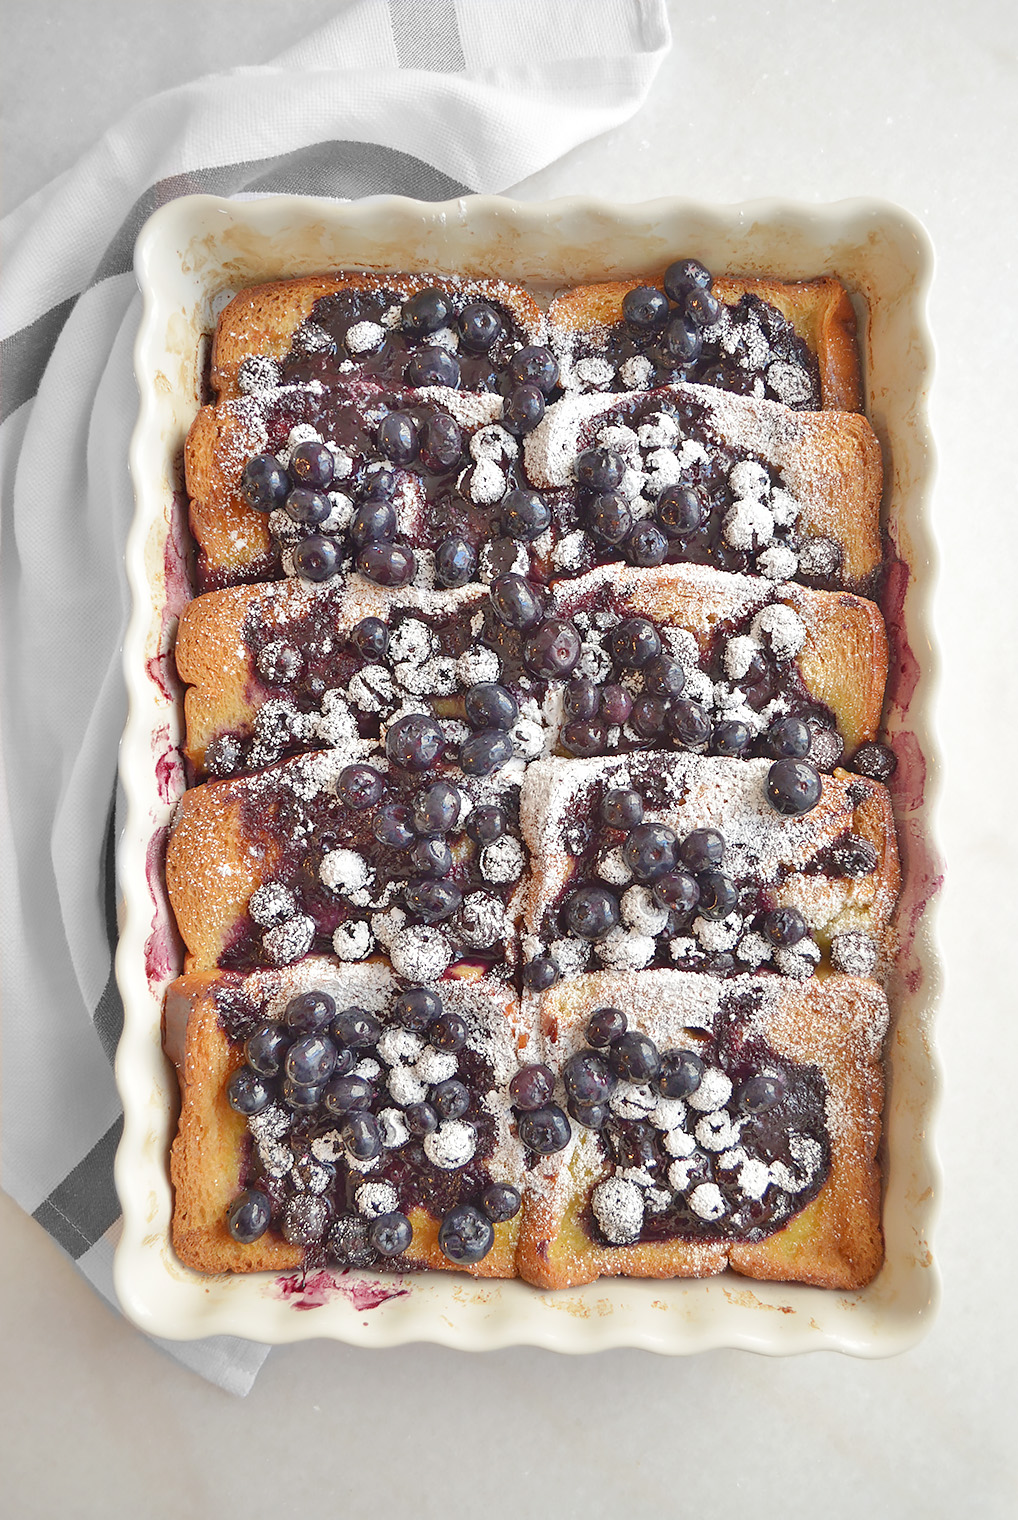 Baked Blueberry Brioche French Toast4.2_acookscanvas-copyright2012-2019_923.1-Recovered